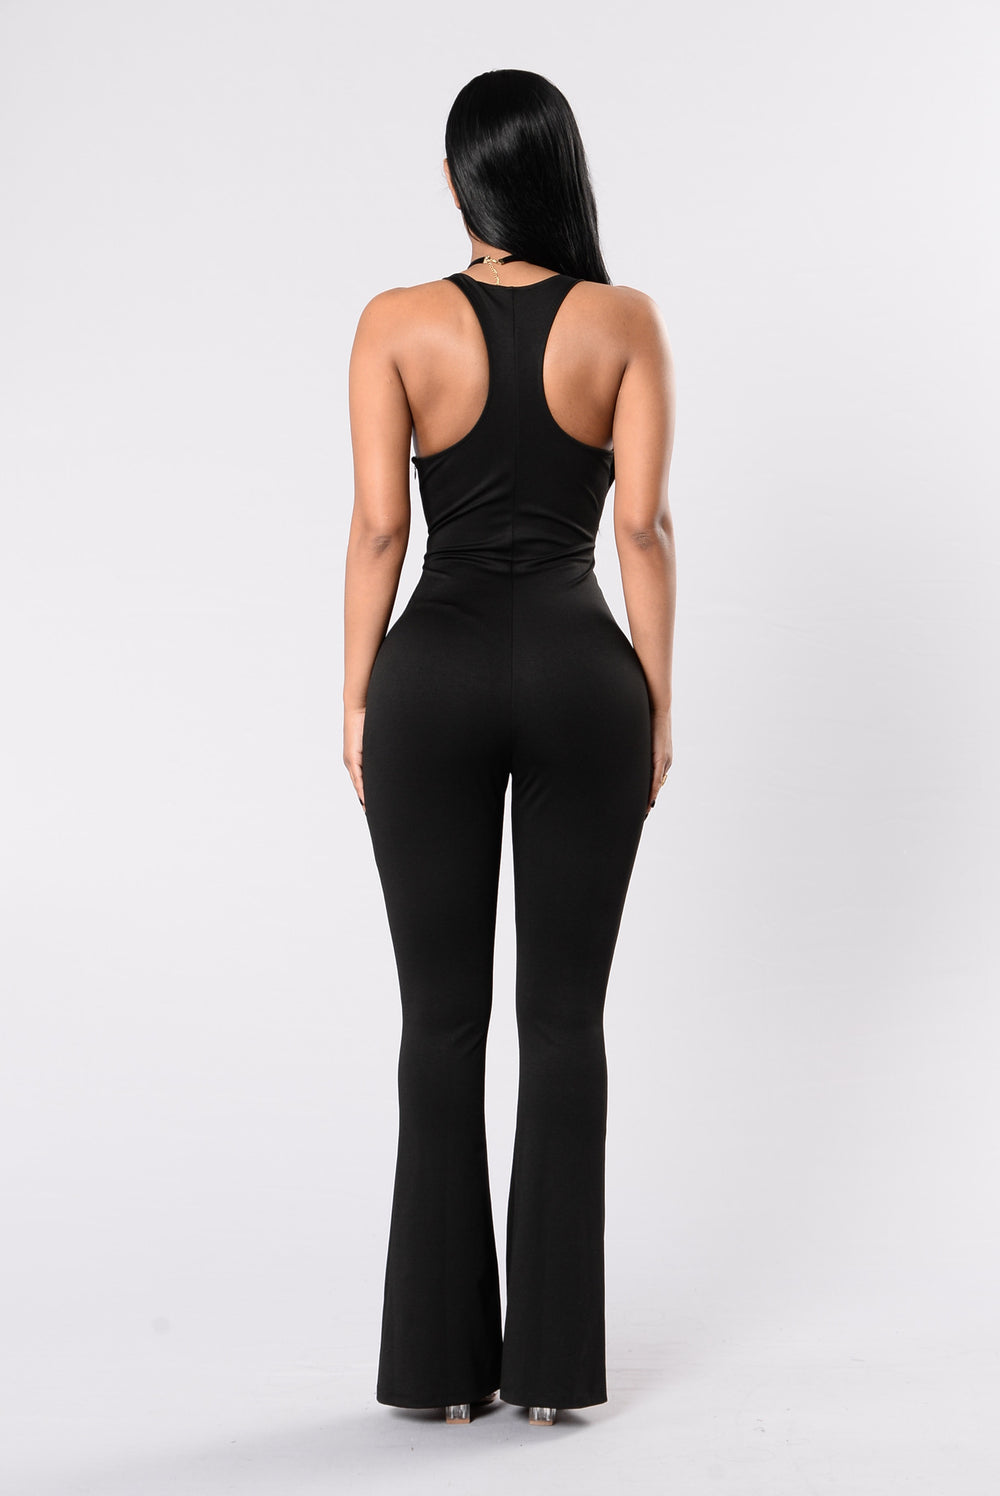 In My Mode Jumpsuit - Black